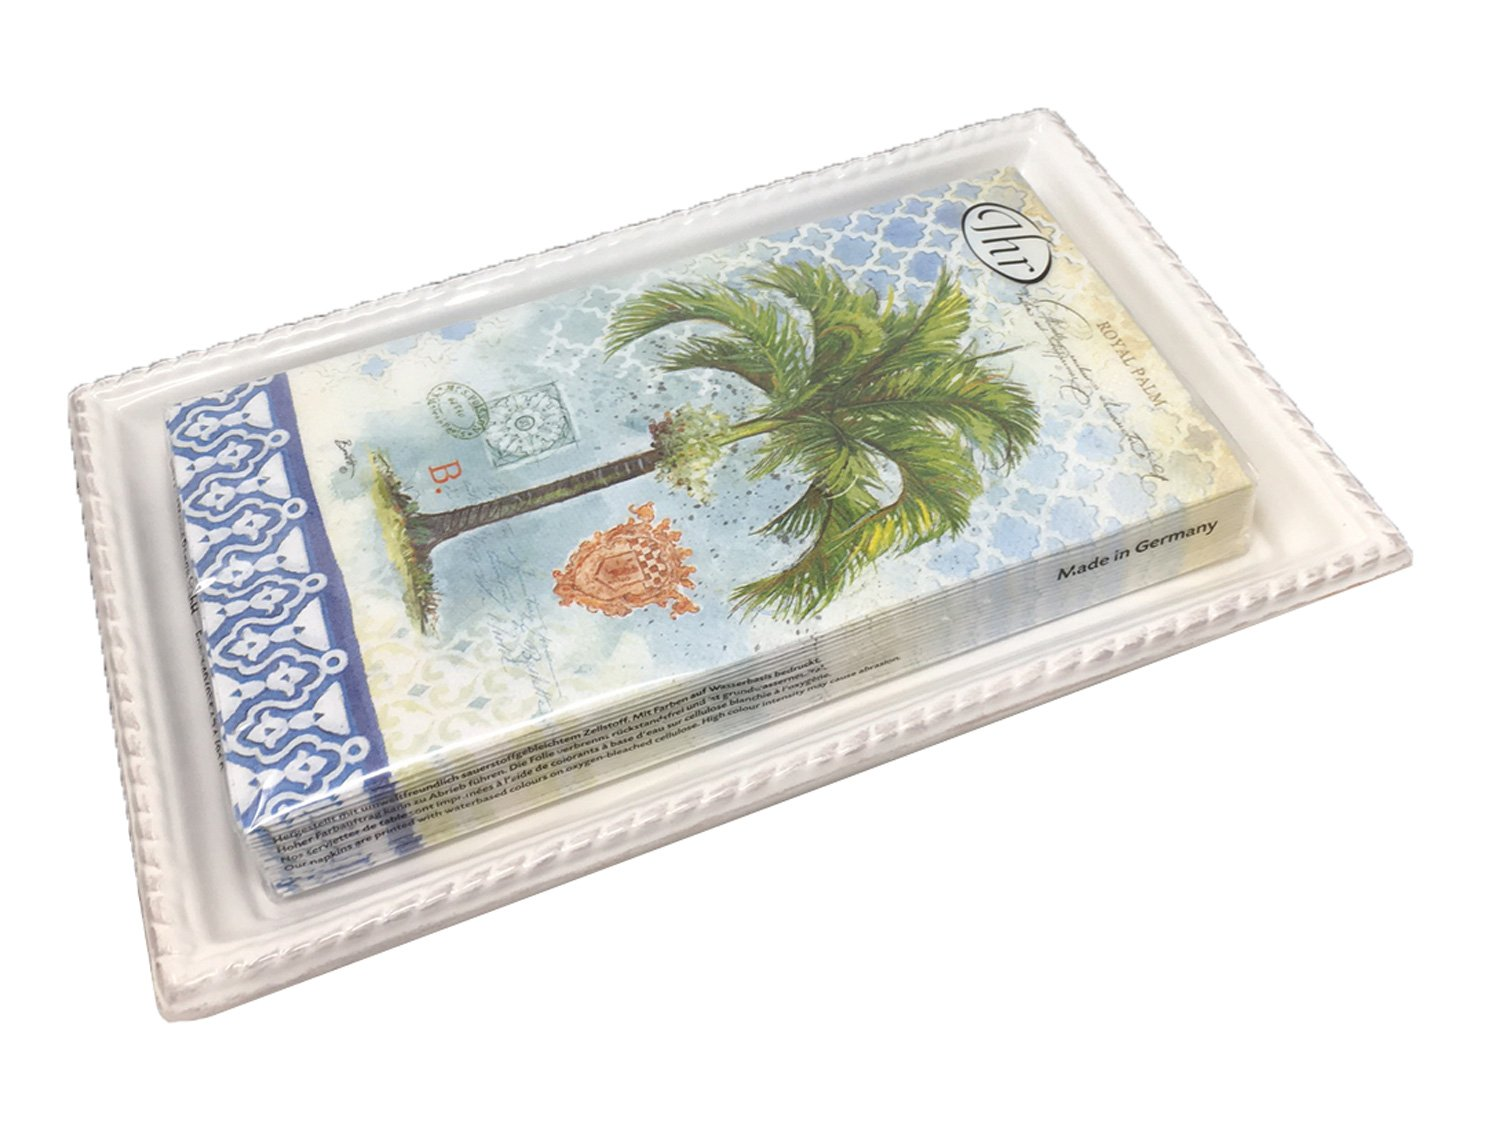 Ideal Home Range 3-Ply Paper Royal Palm, 16 Count Guest Towel Napkins with Boston International Antique White Ceramic Caddy Tray